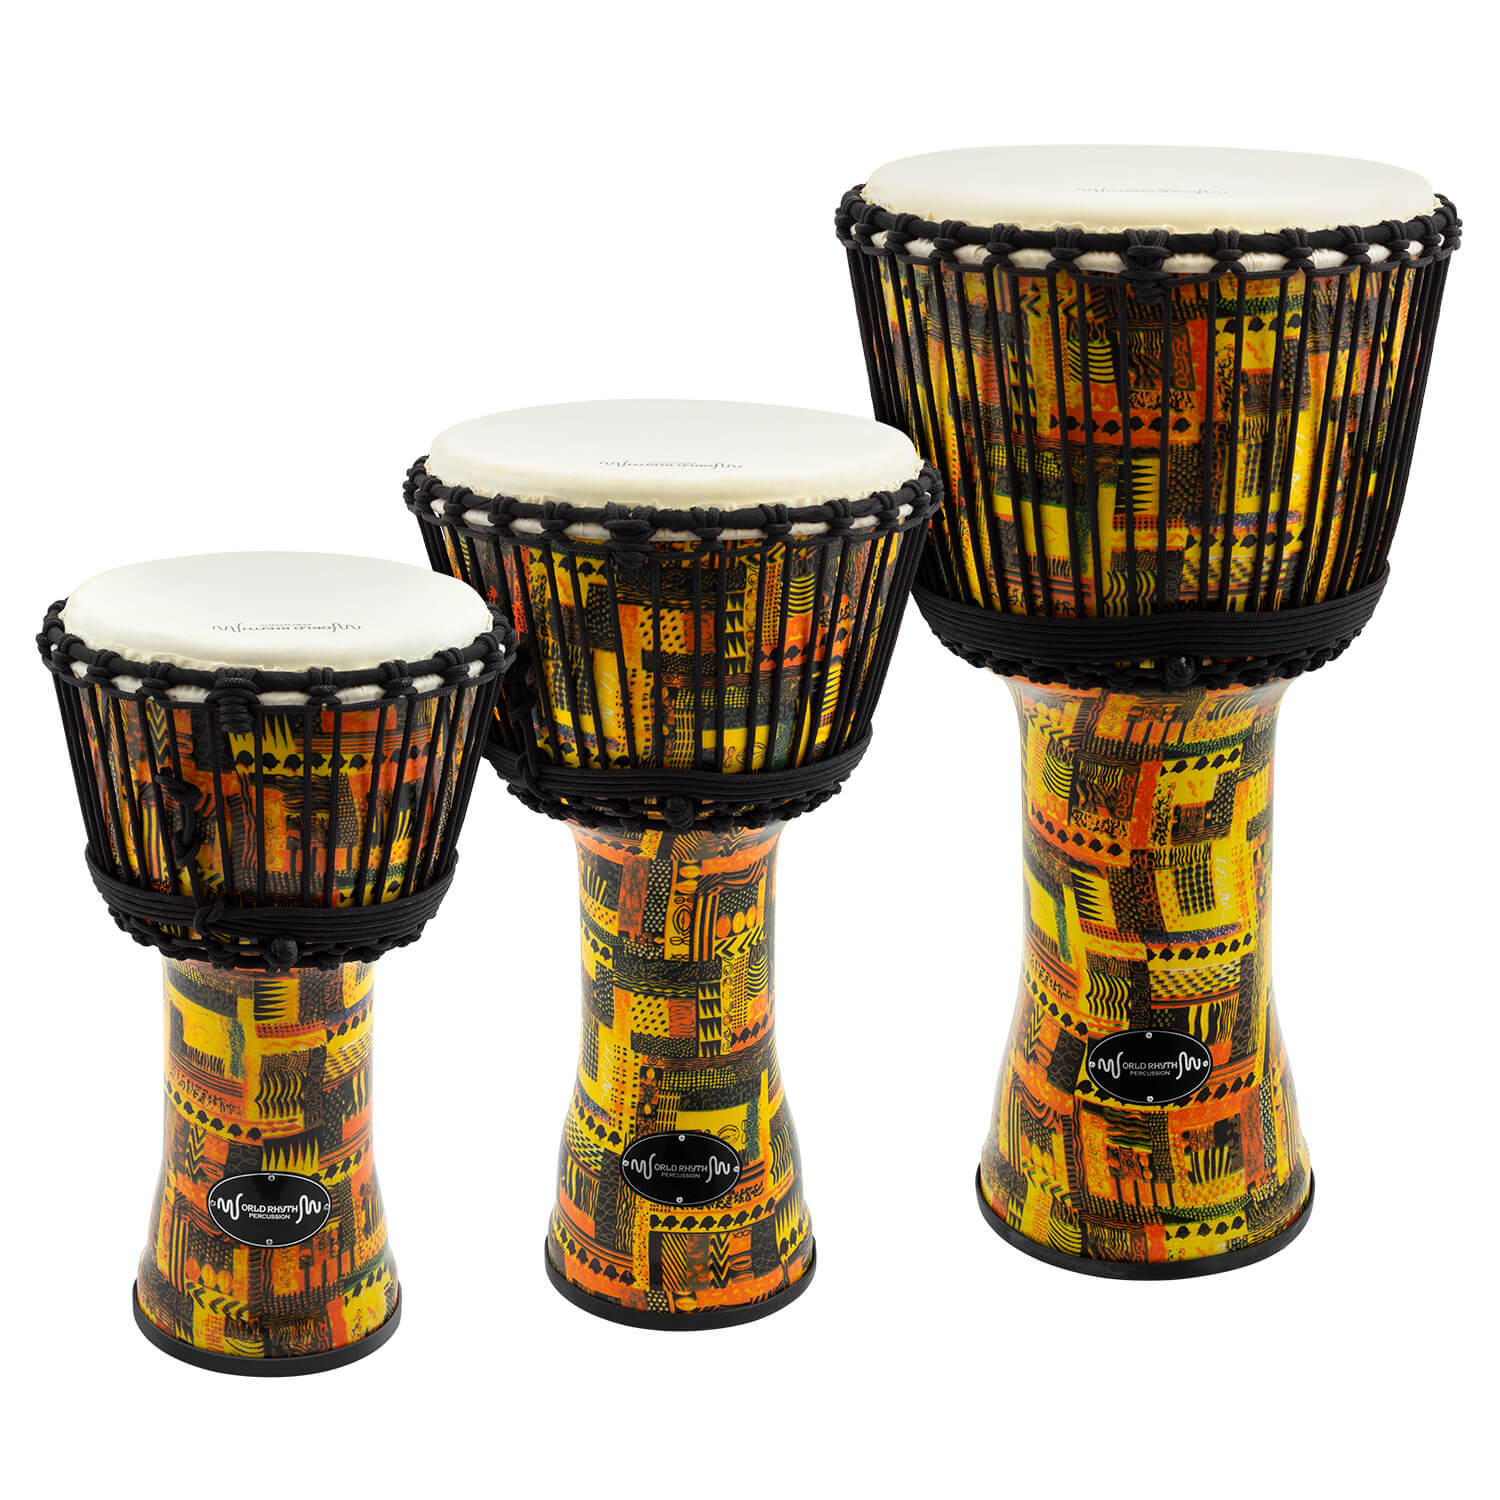 Image result for djembe drum